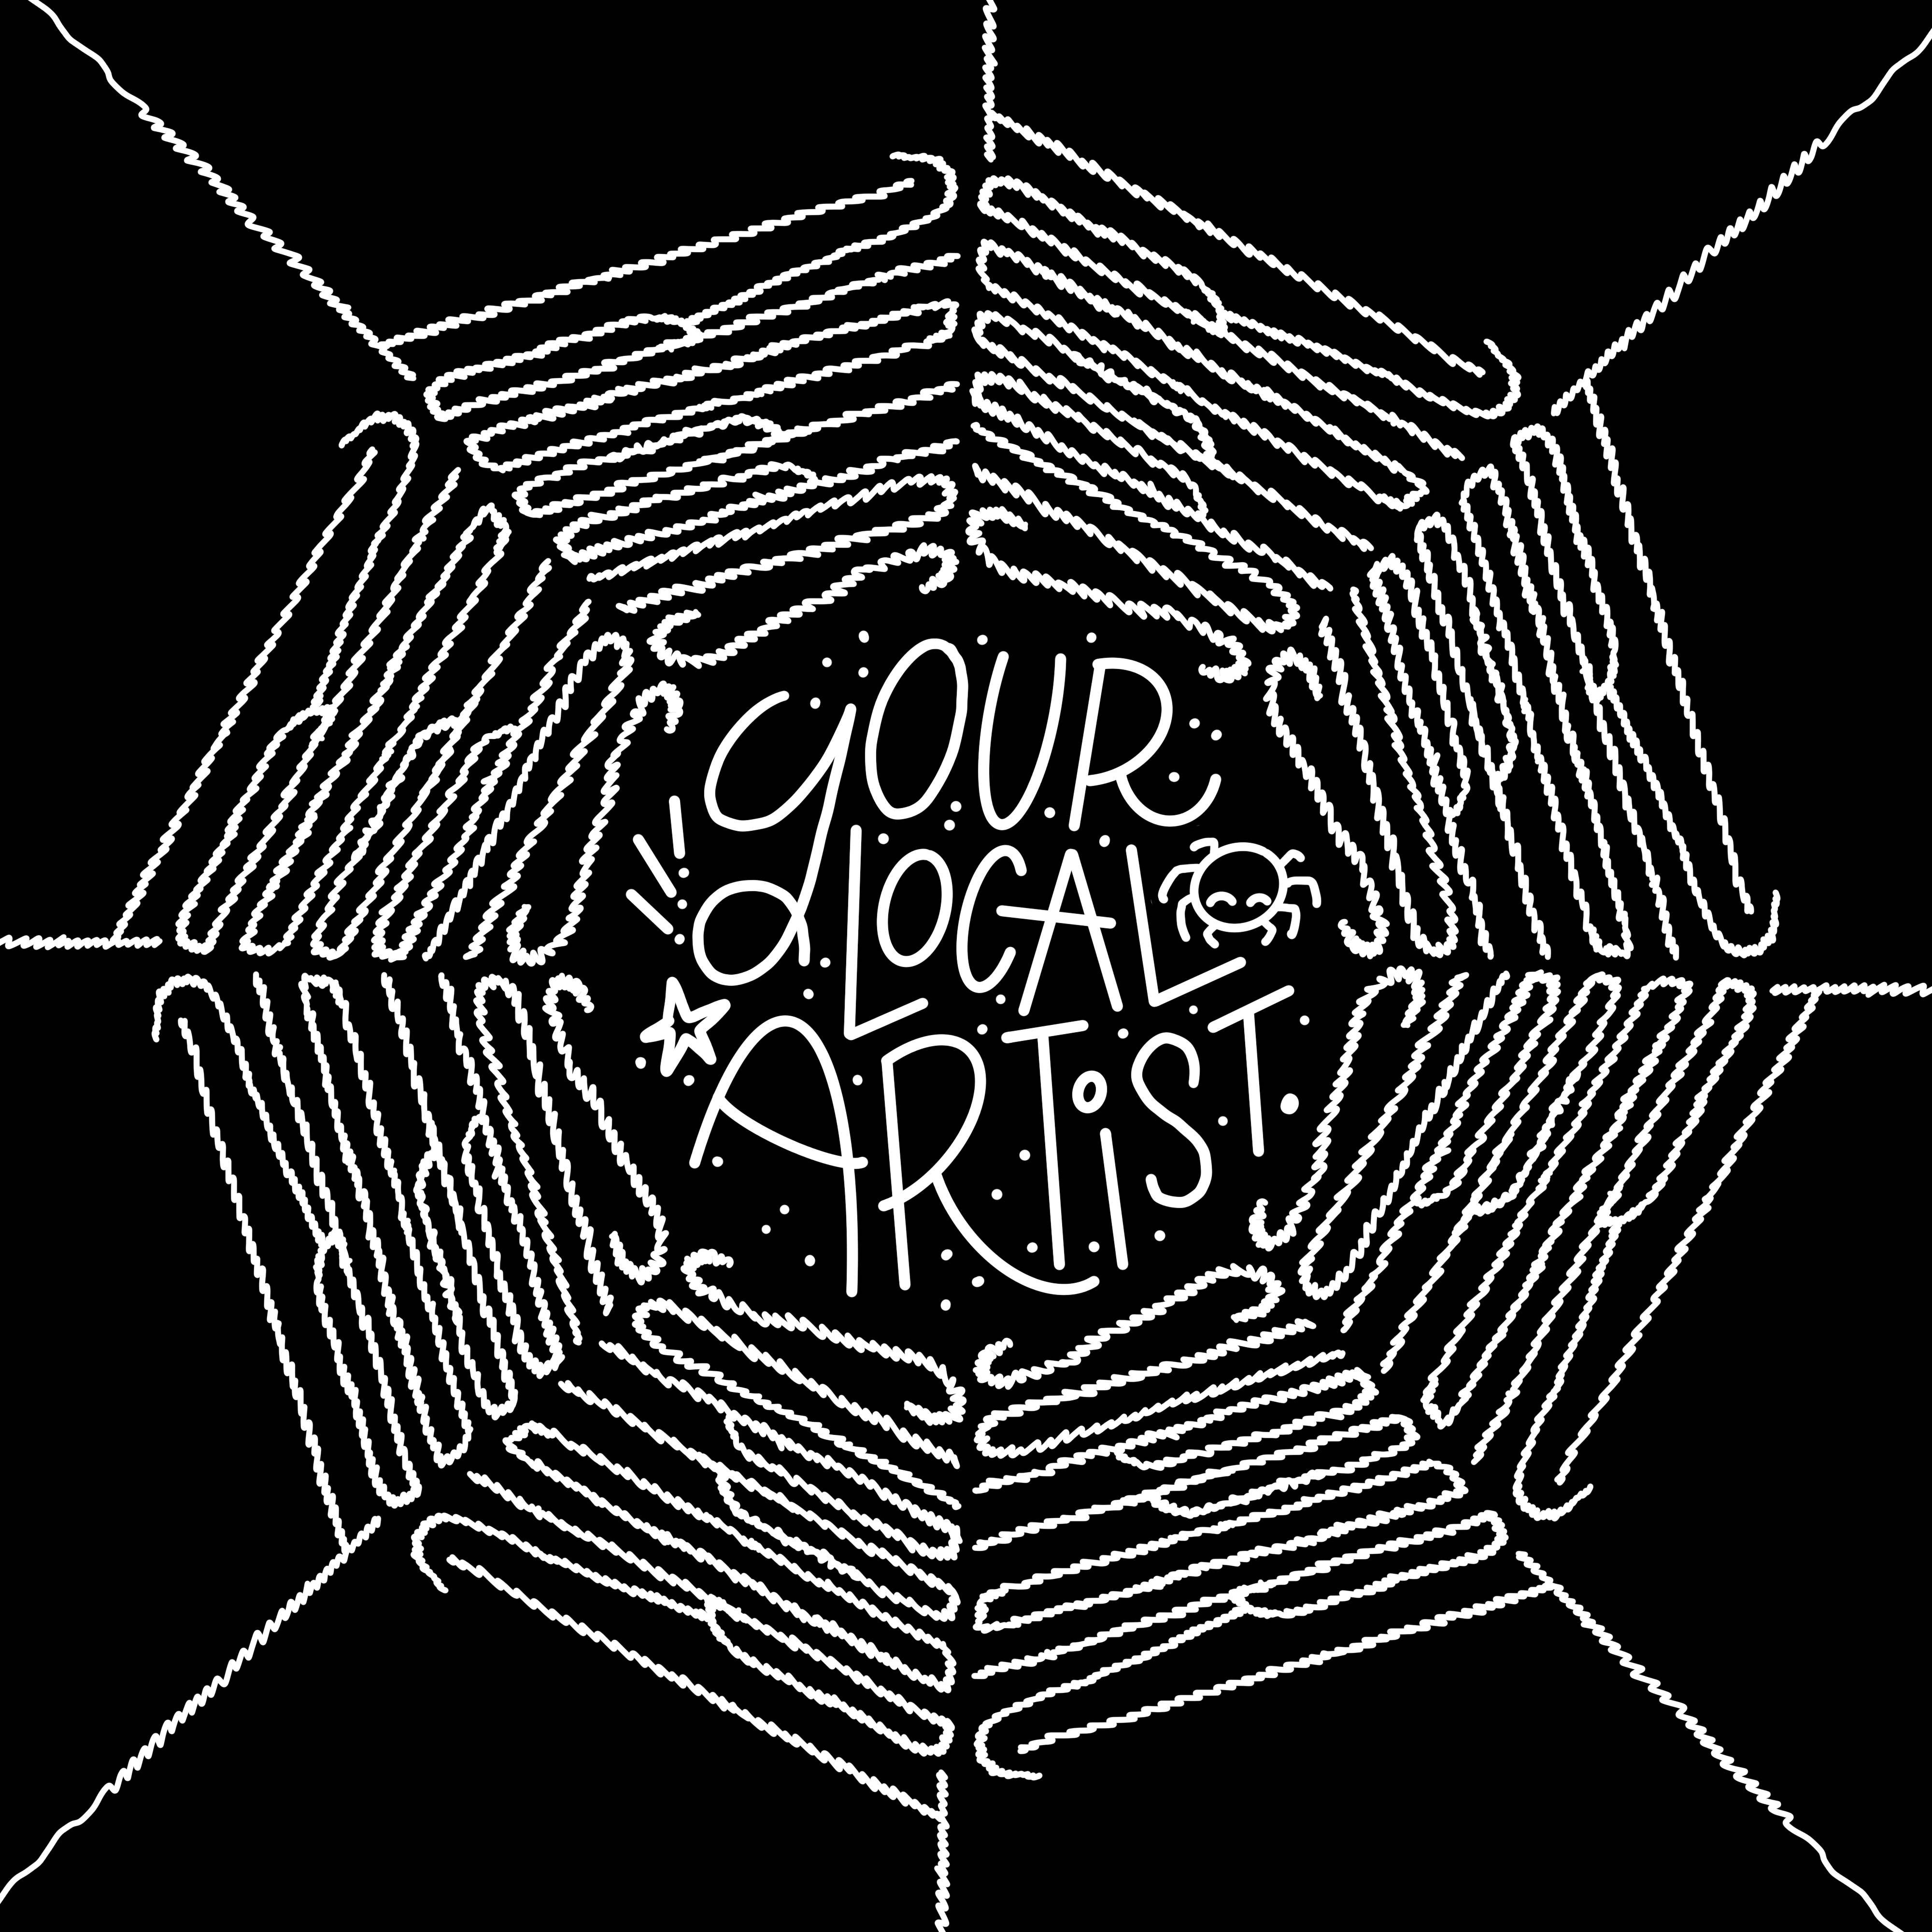 Suport-Your-Local-Artist